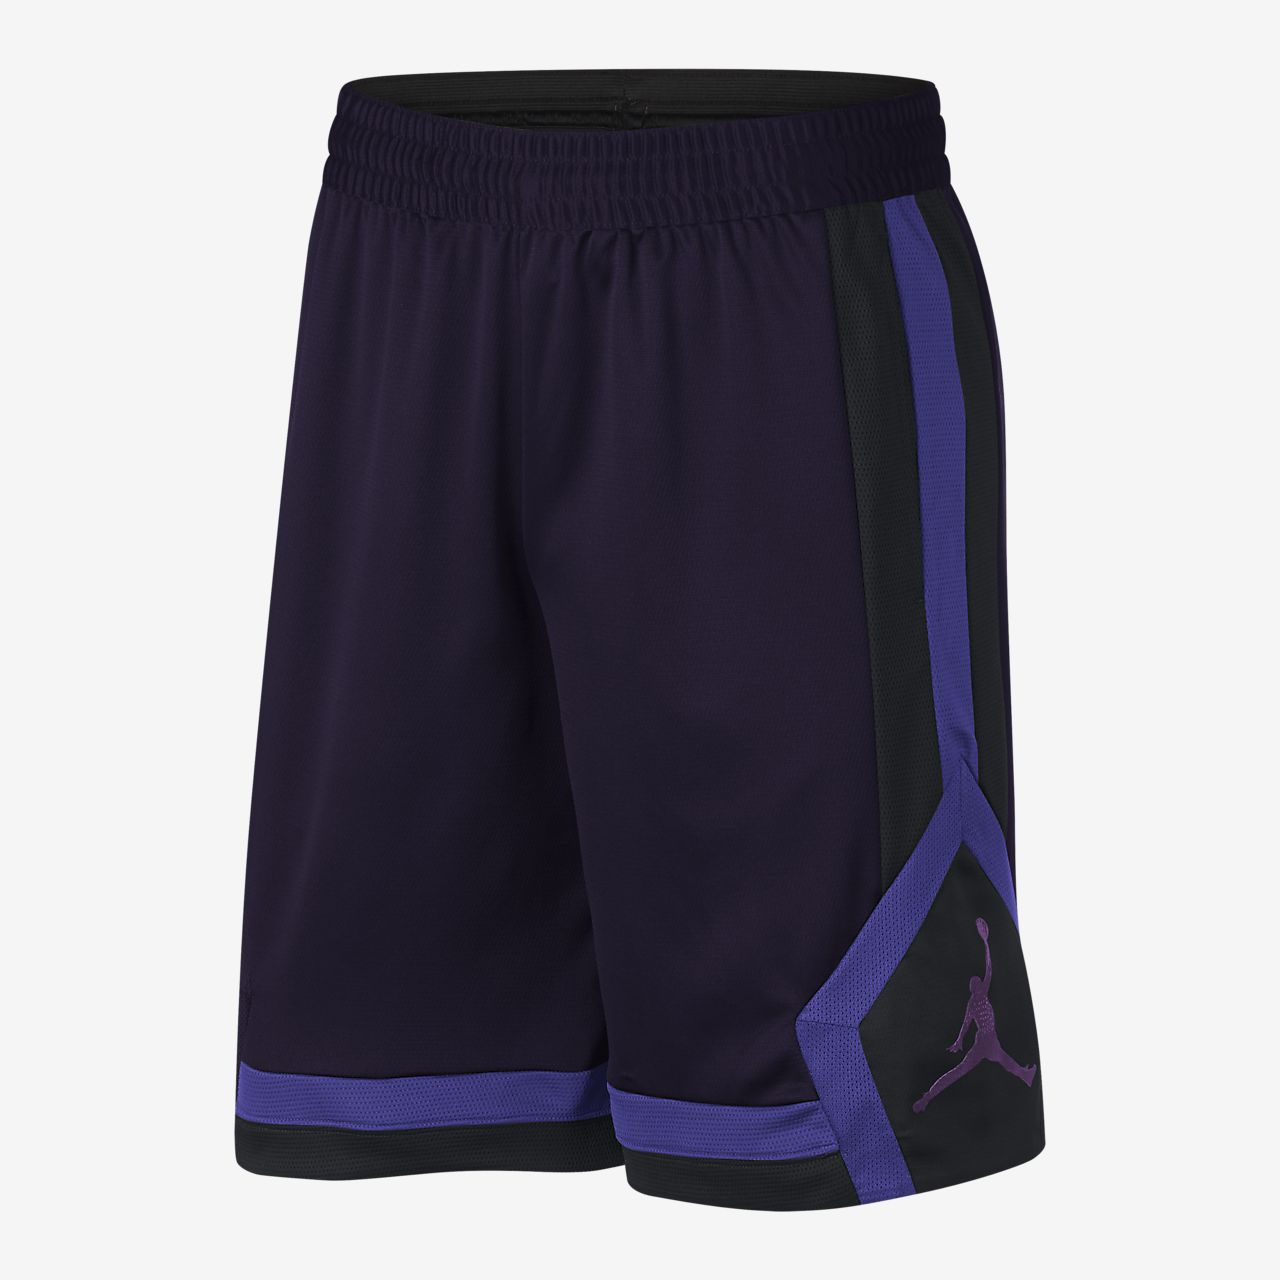 a81a04dcb2ac Jordan Rise Men s Basketball Shorts. Nike.com IN